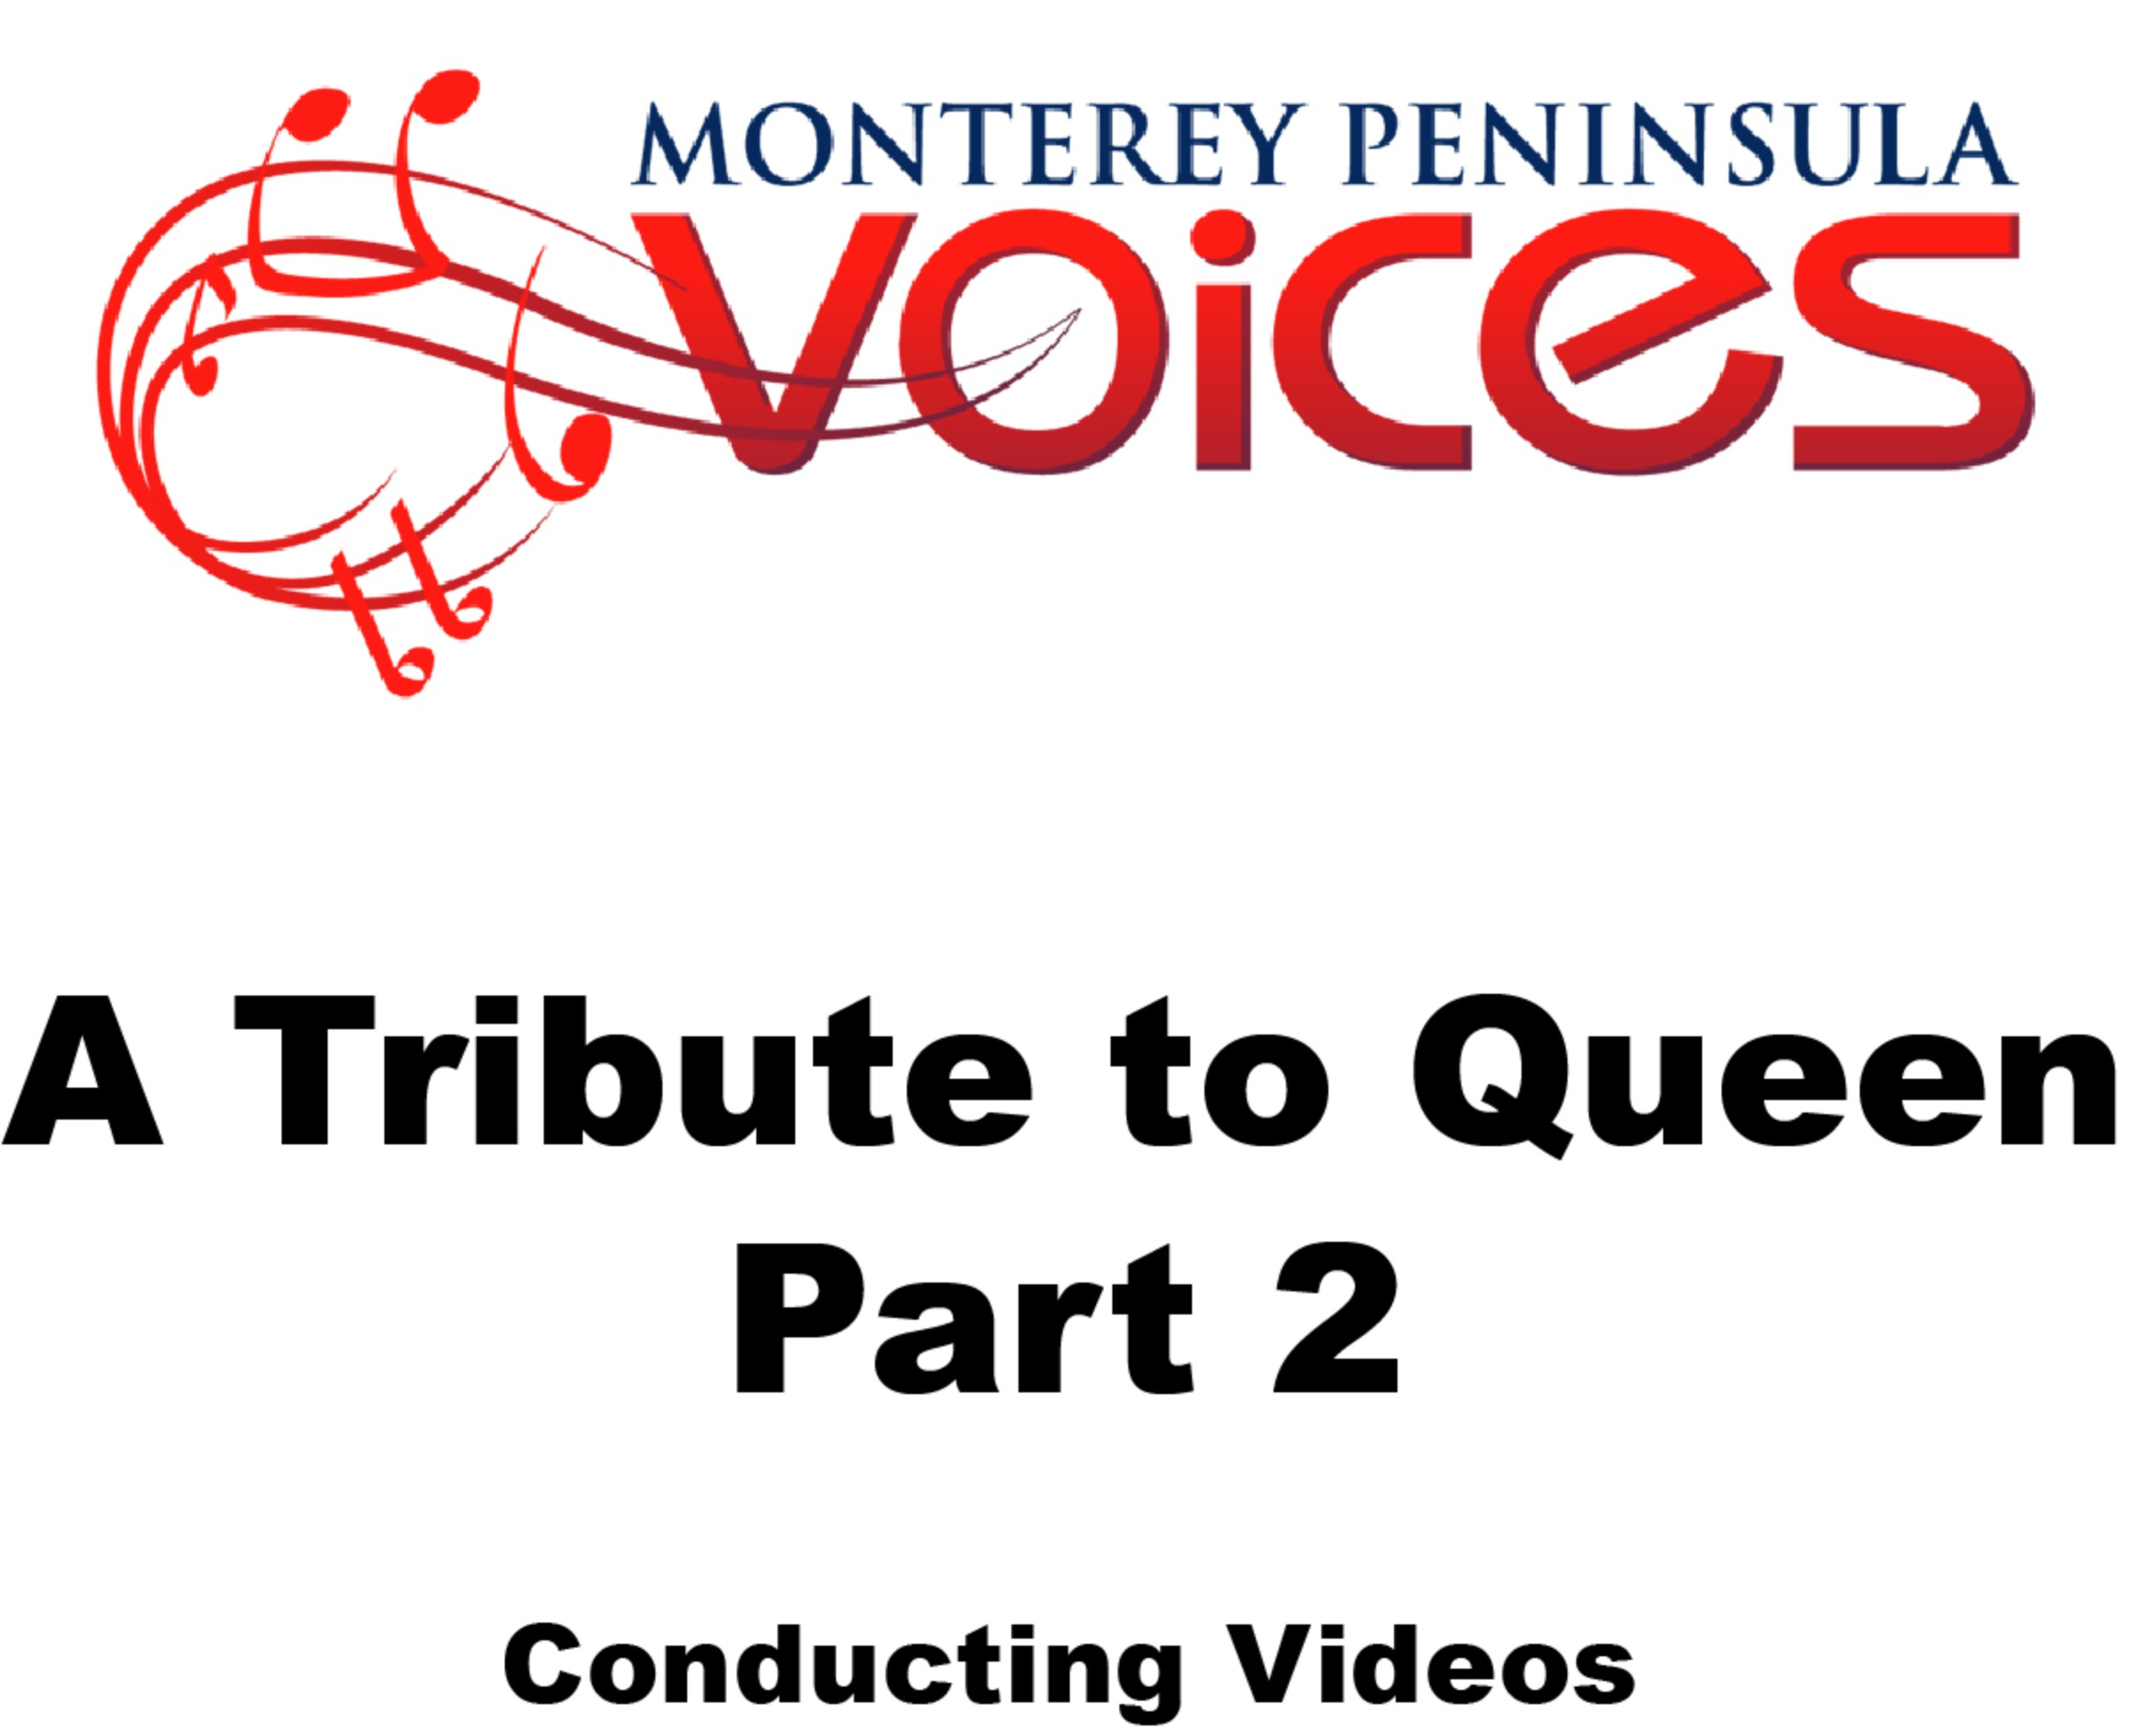 MPV - PART 2 of Tribute to QUEEN - CV